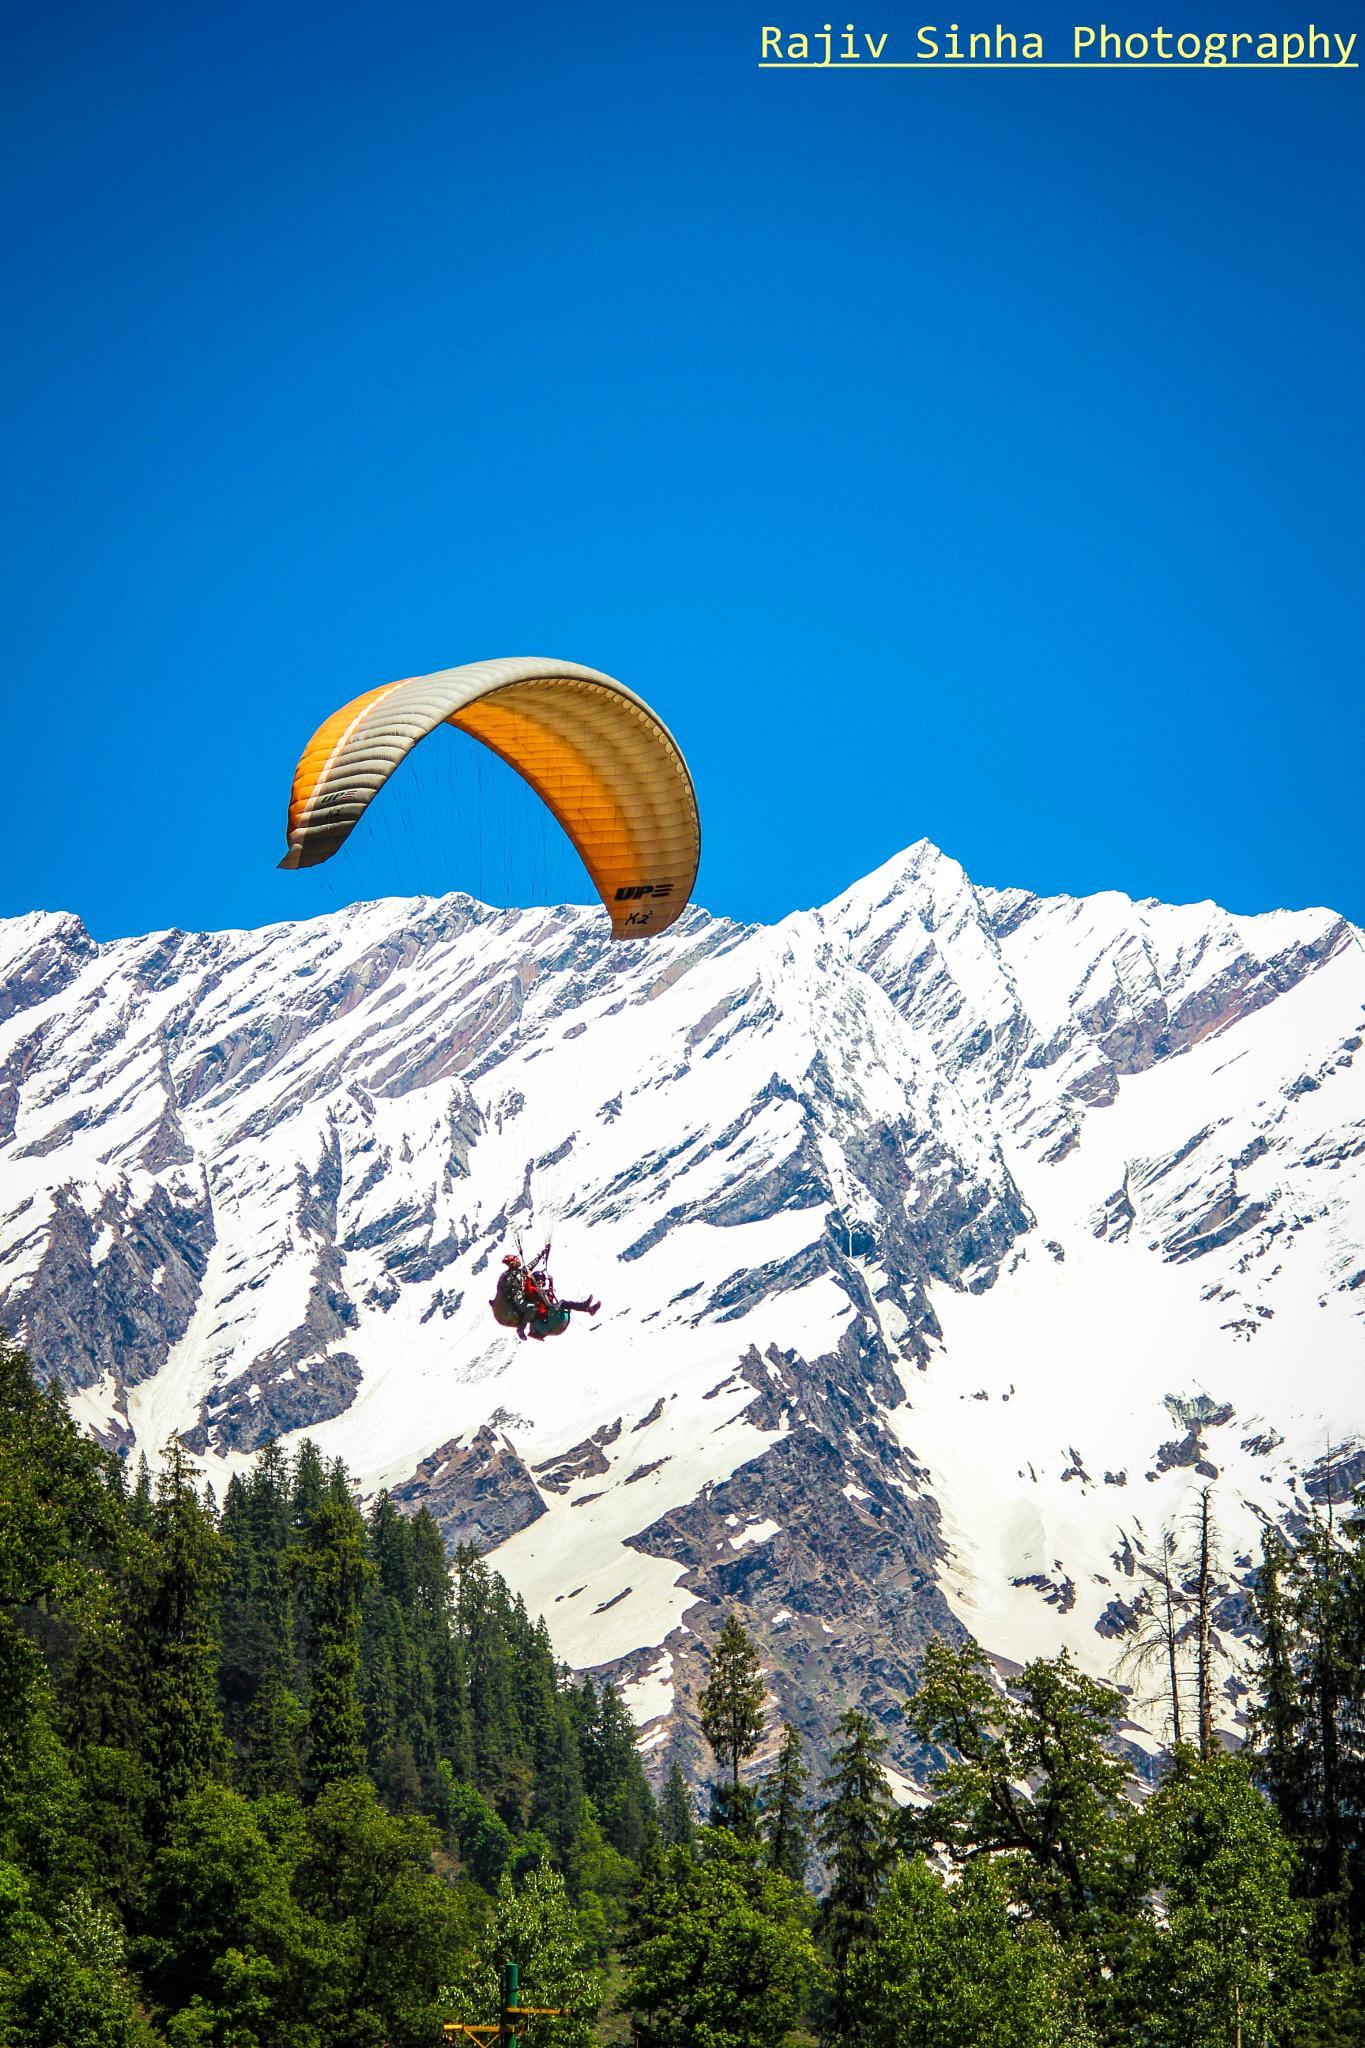 Fly High by Rajiv Sinha Photography